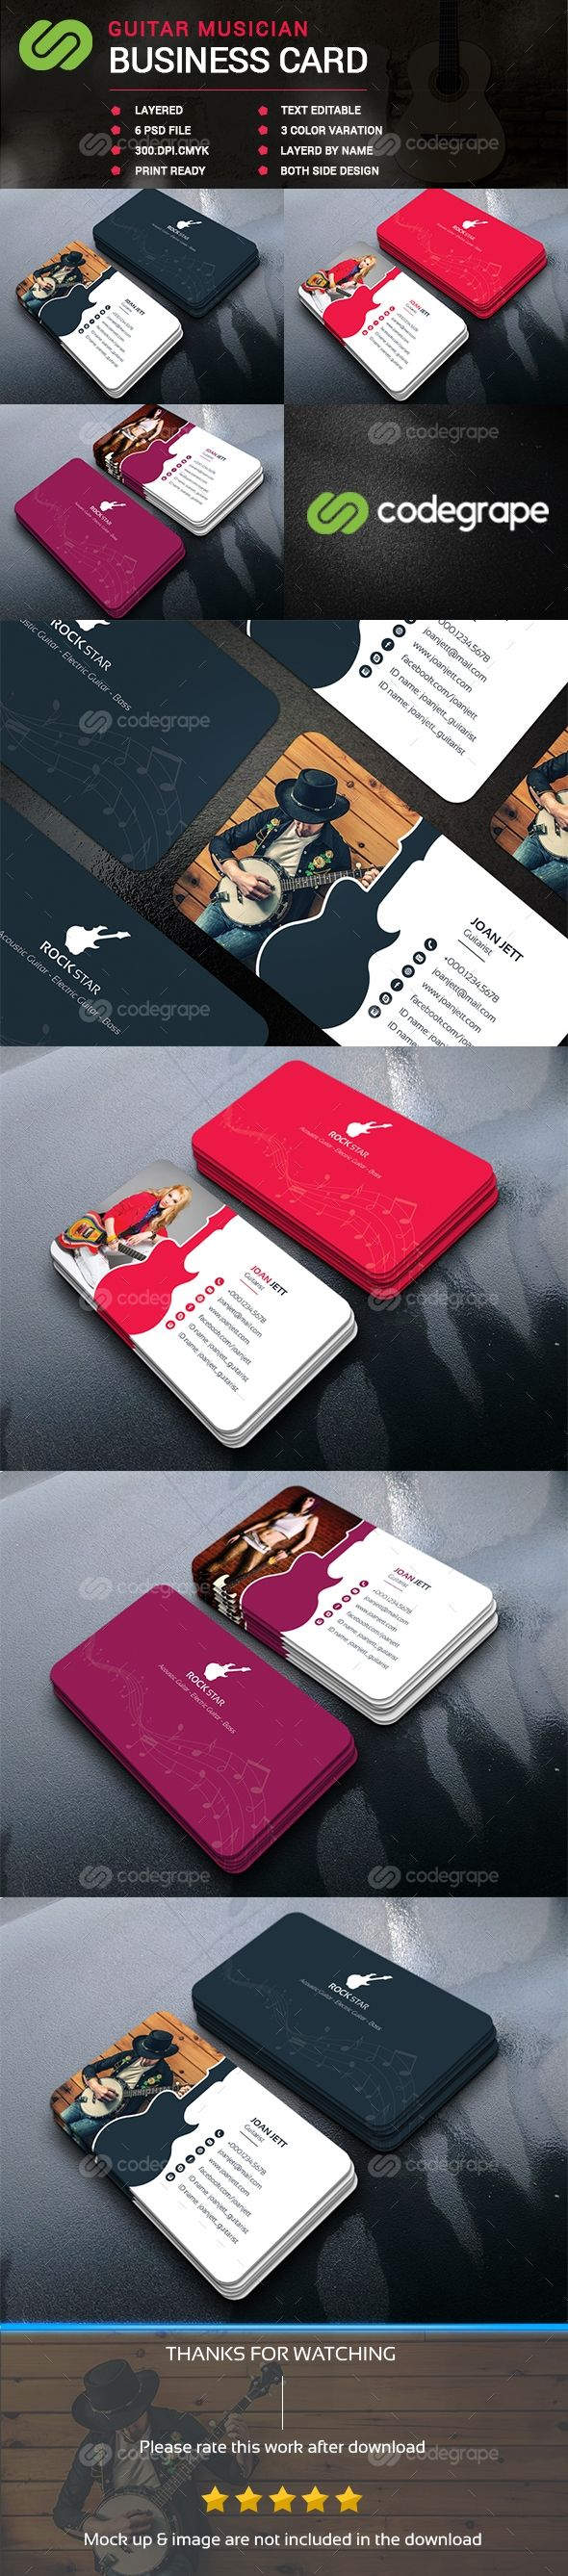 Guitar musician business card business cards musicians and card this is a guitar musician business card template this template download contains a 300 dpi print ready cmyk psd files all main elements are editable and reheart Images